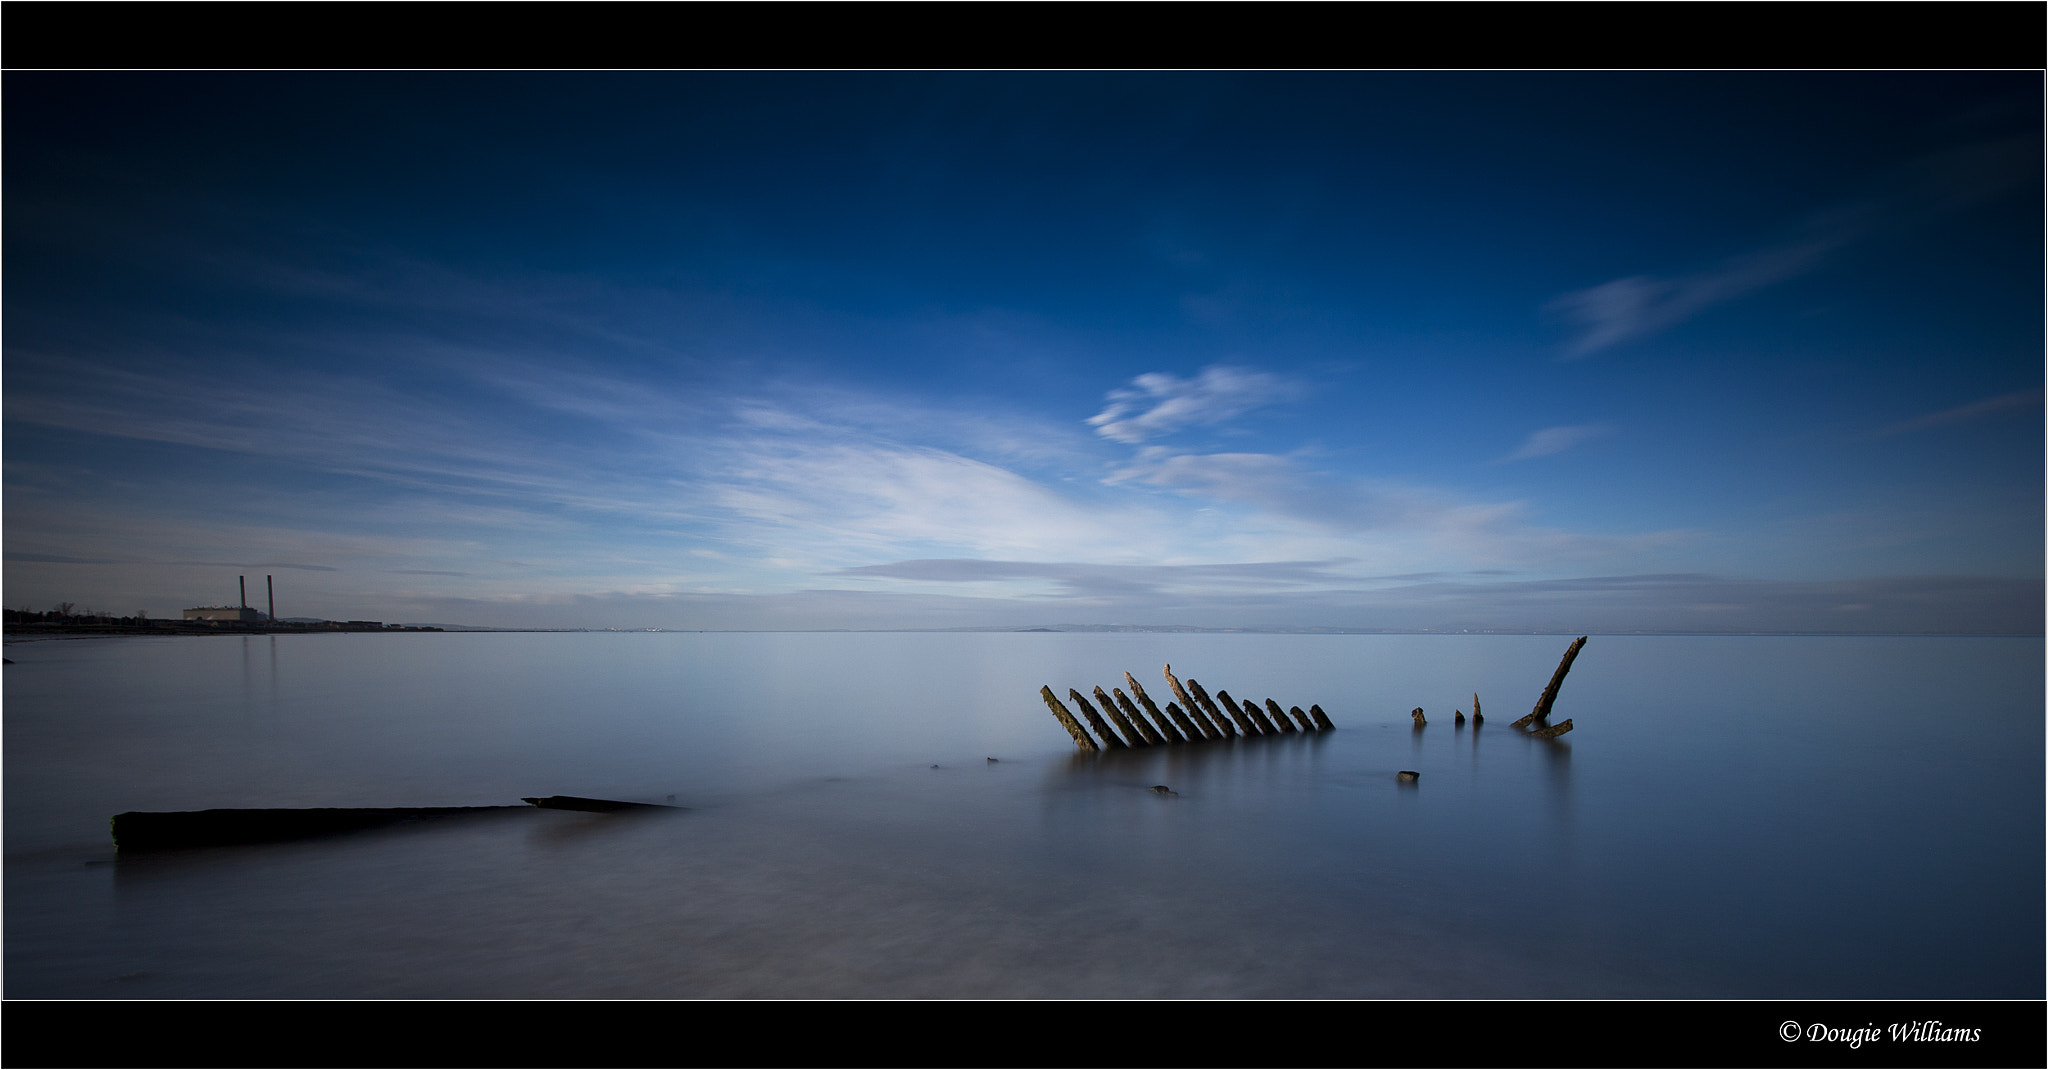 Photograph Longniddry Wreck by Dougie Williams on 500px